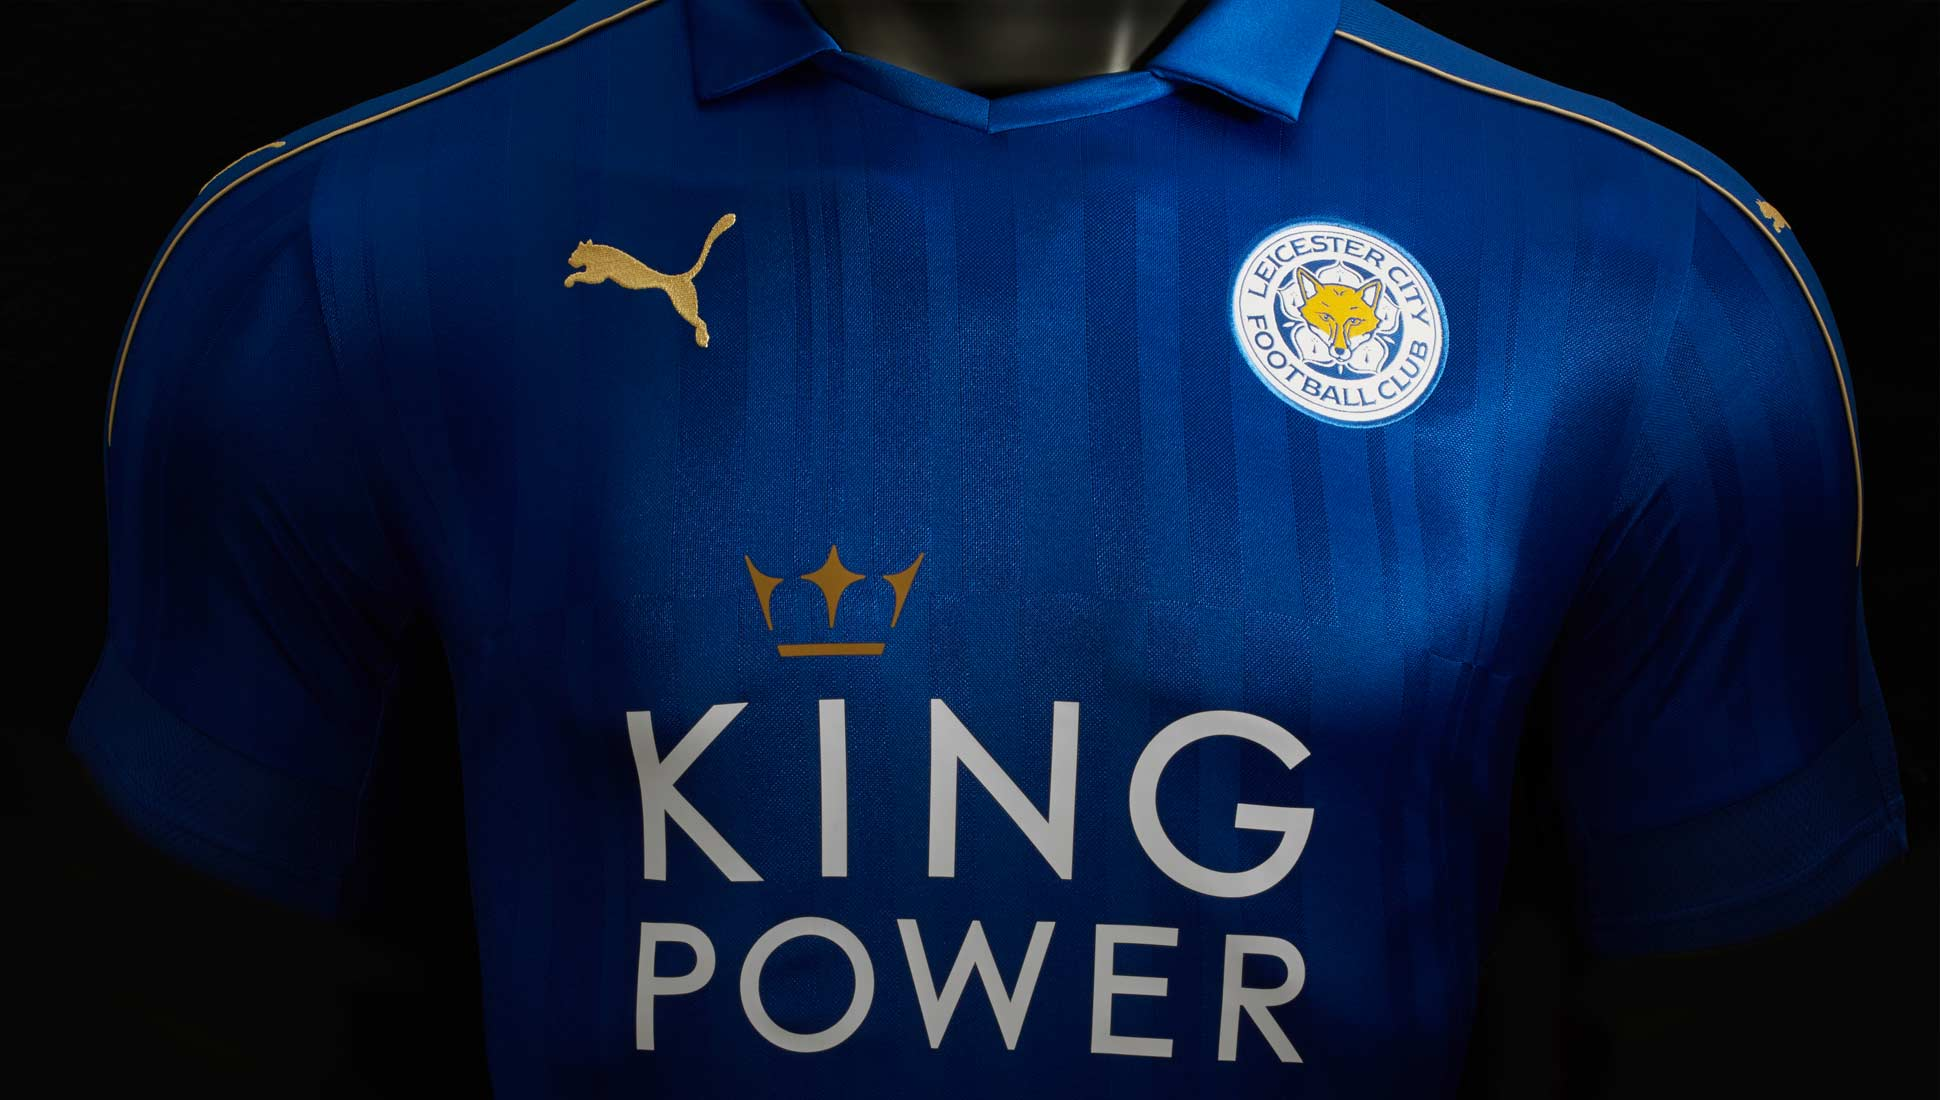 091abe709f6 Leicester City 2016 17 Home Kit by PUMA - SoccerBible